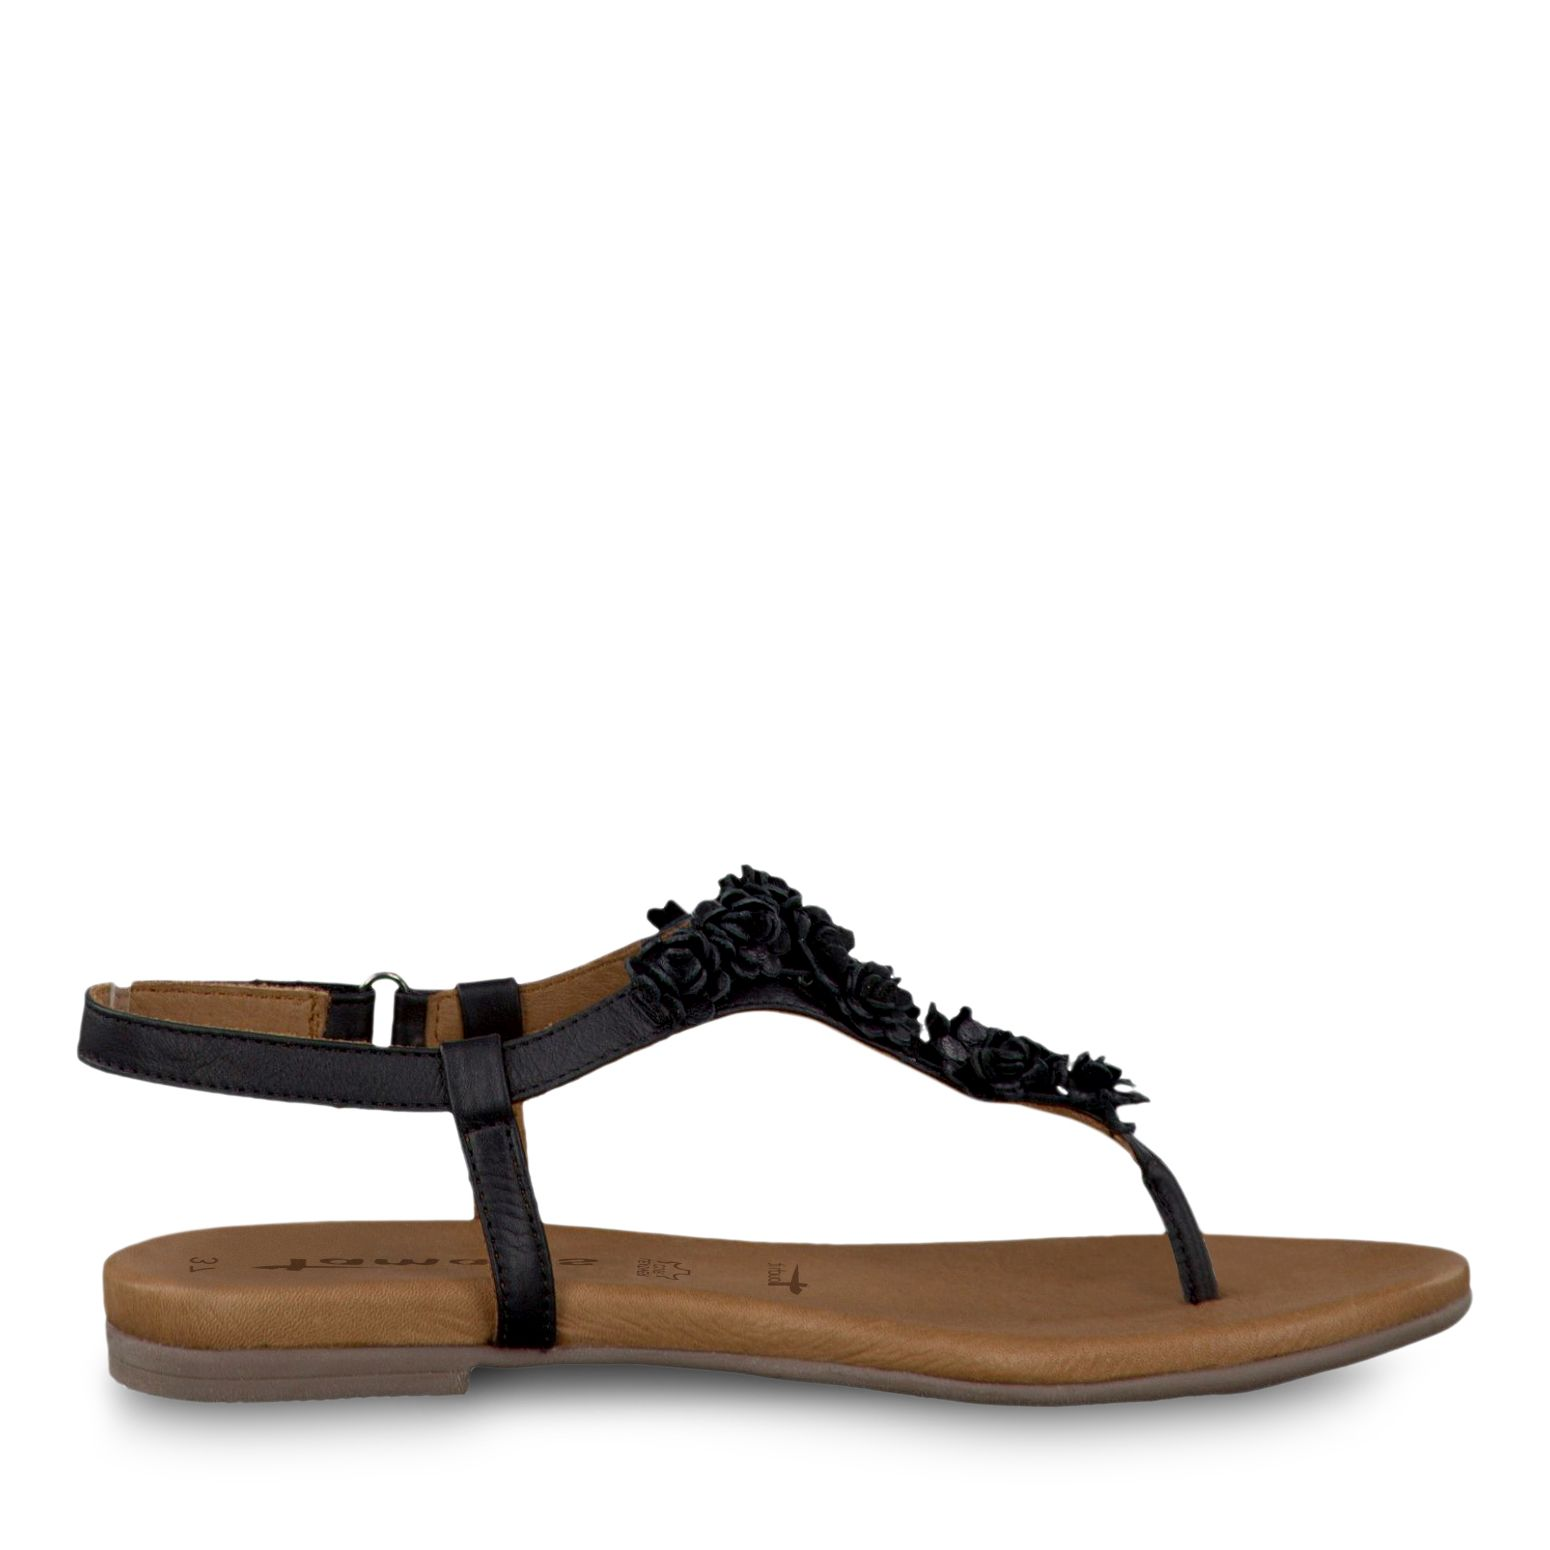 Tamaris KIM - Sandals - black bnNW8A69